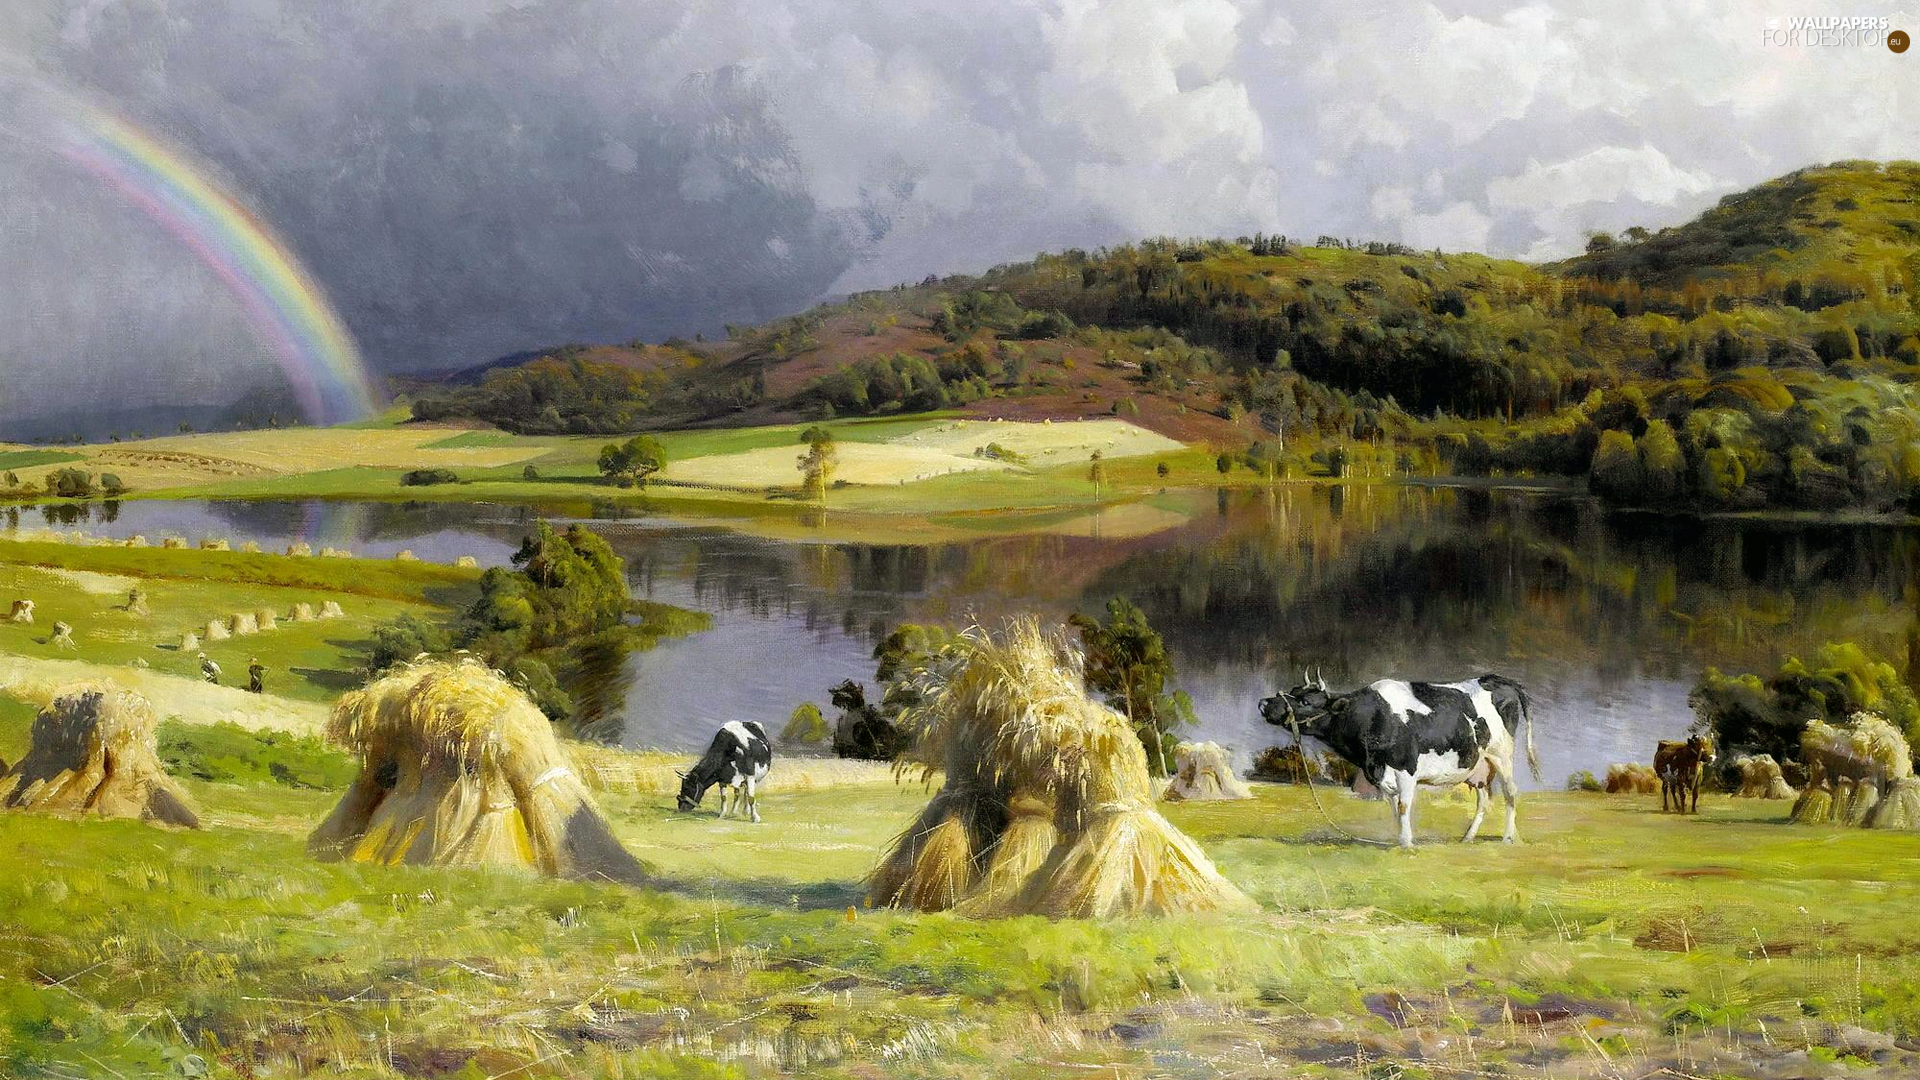 picture, painting, Peder Mork Monsted, Great Rainbows, Cows, The Hills, country, pasture, River